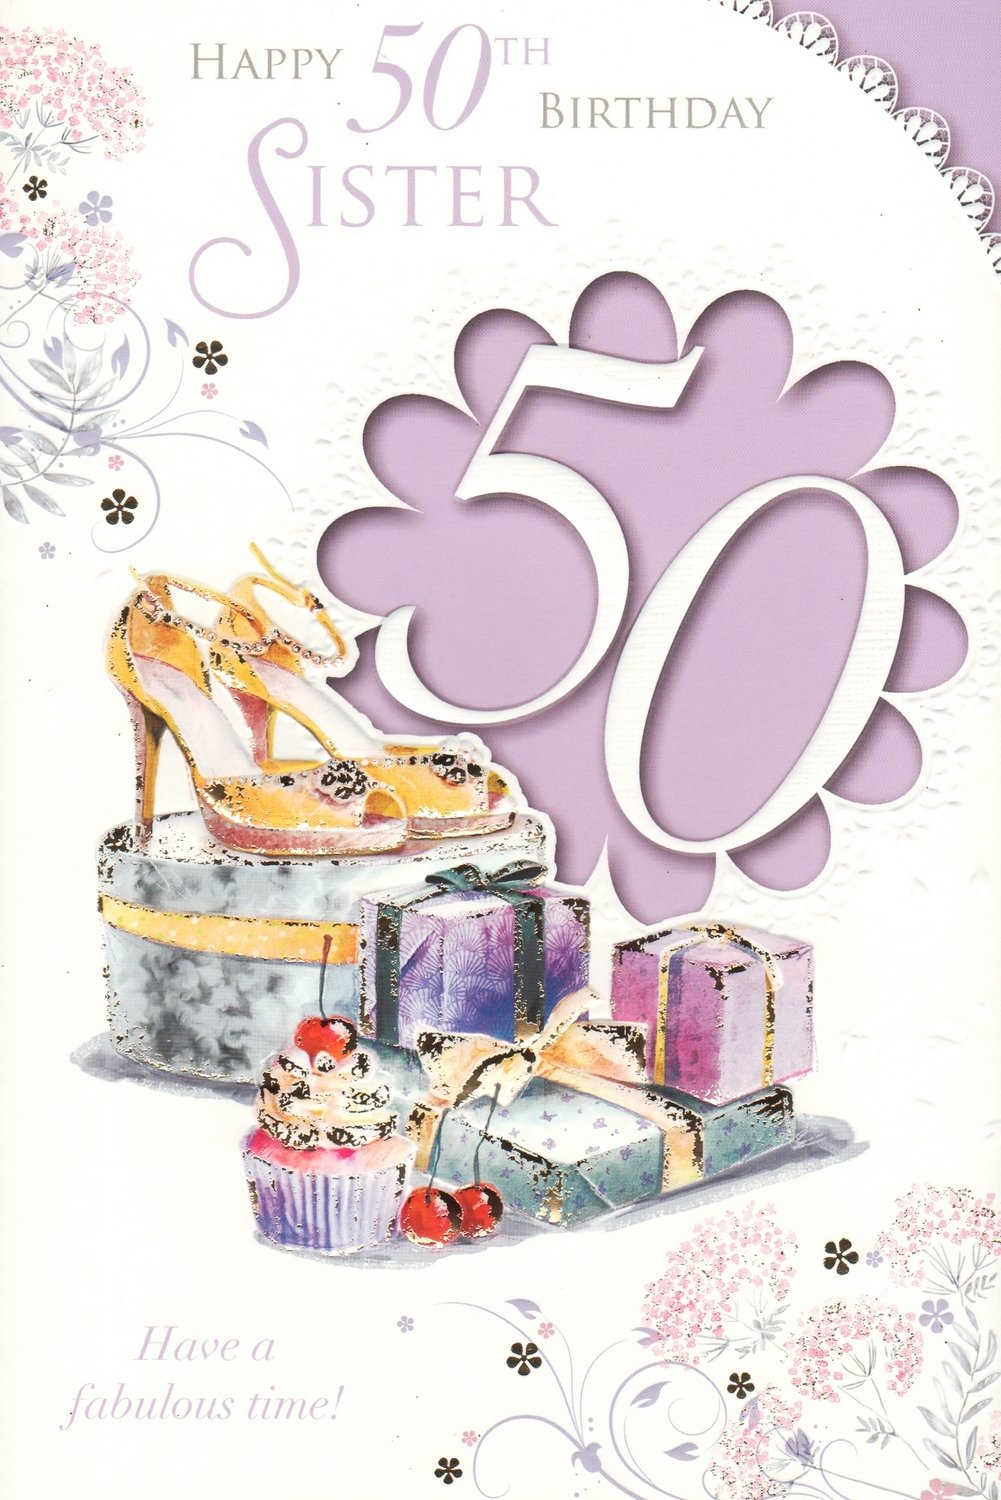 Happy 50th Birthday Sister Card Amazoncouk Garden Outdoors